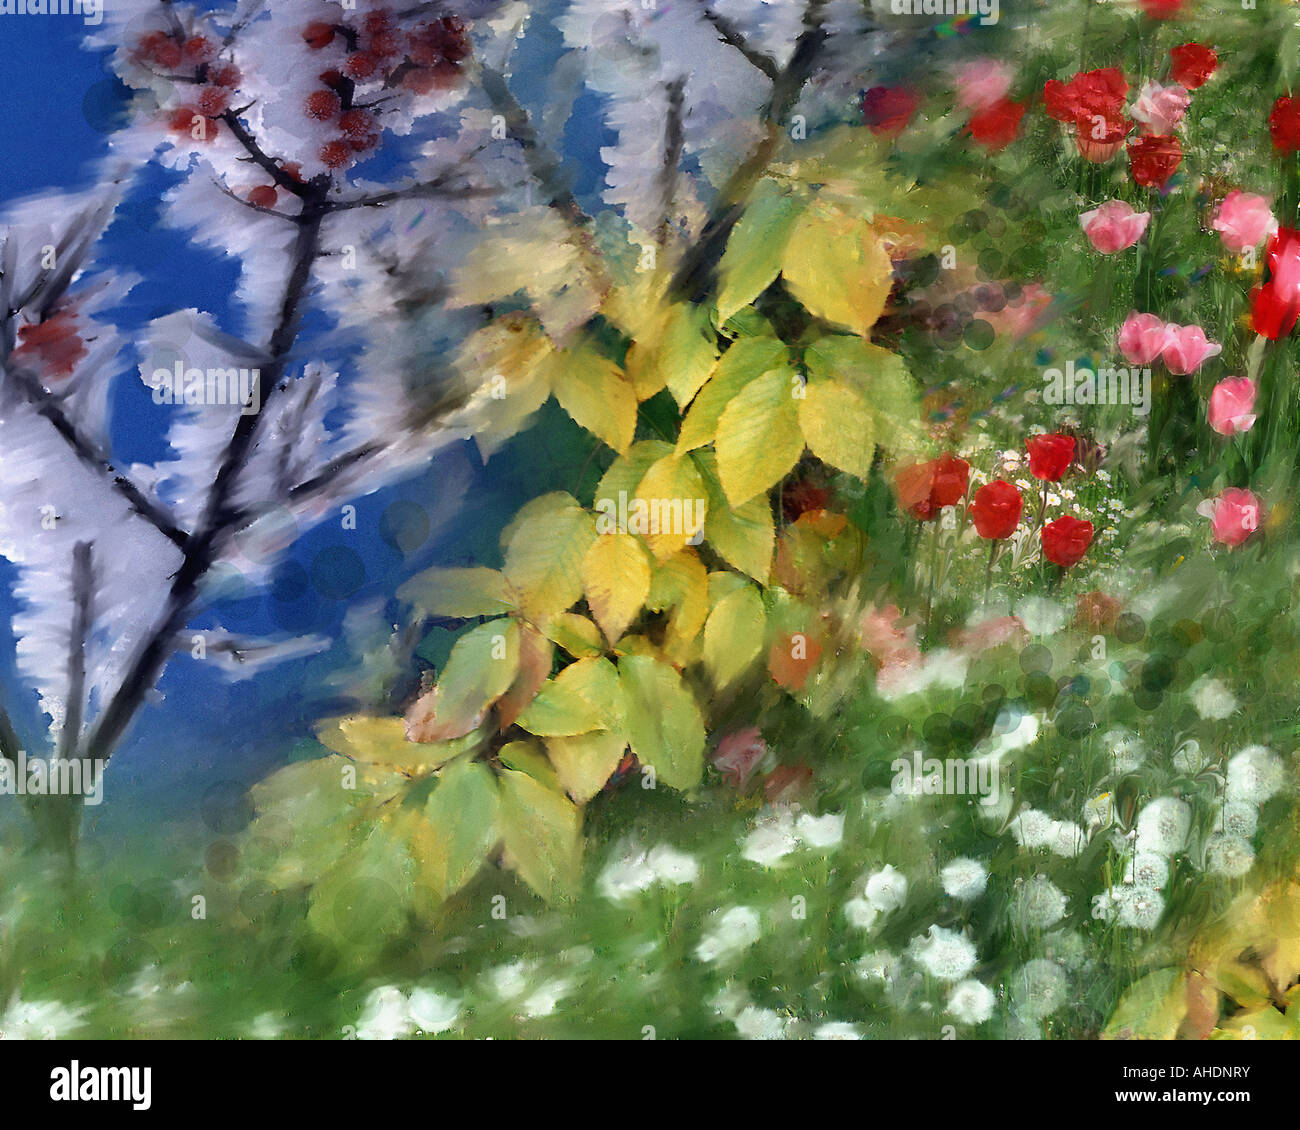 DIGITAL ART: Four Seasons - Stock Image